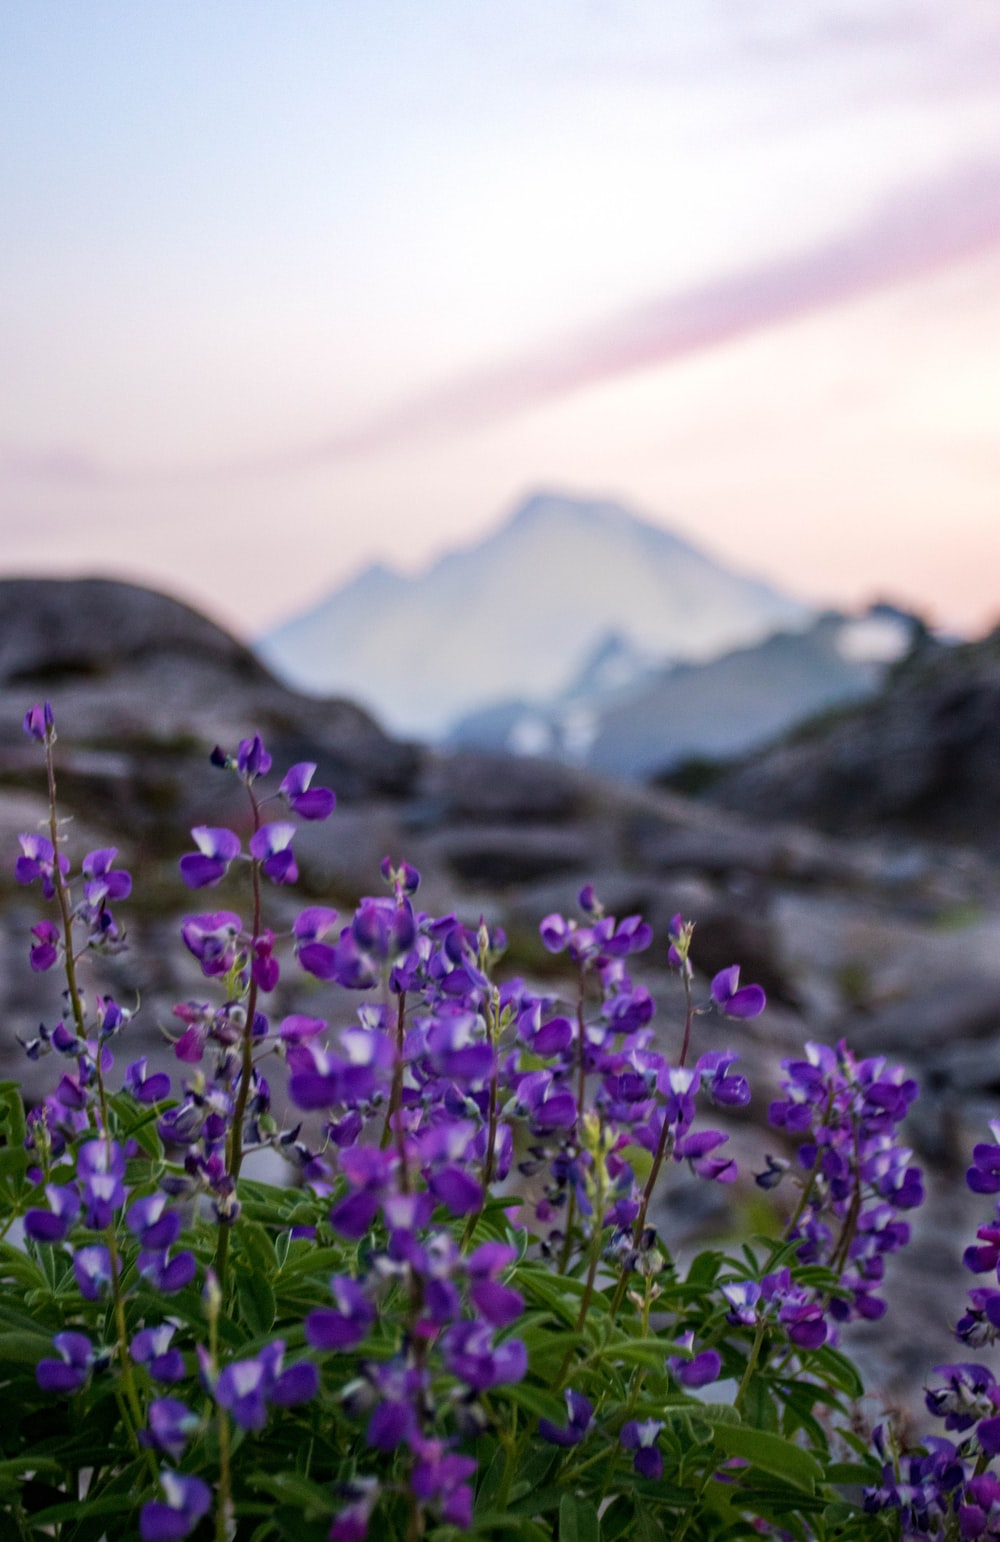 purple petaled flower near mountain range under gray clouds at daytime